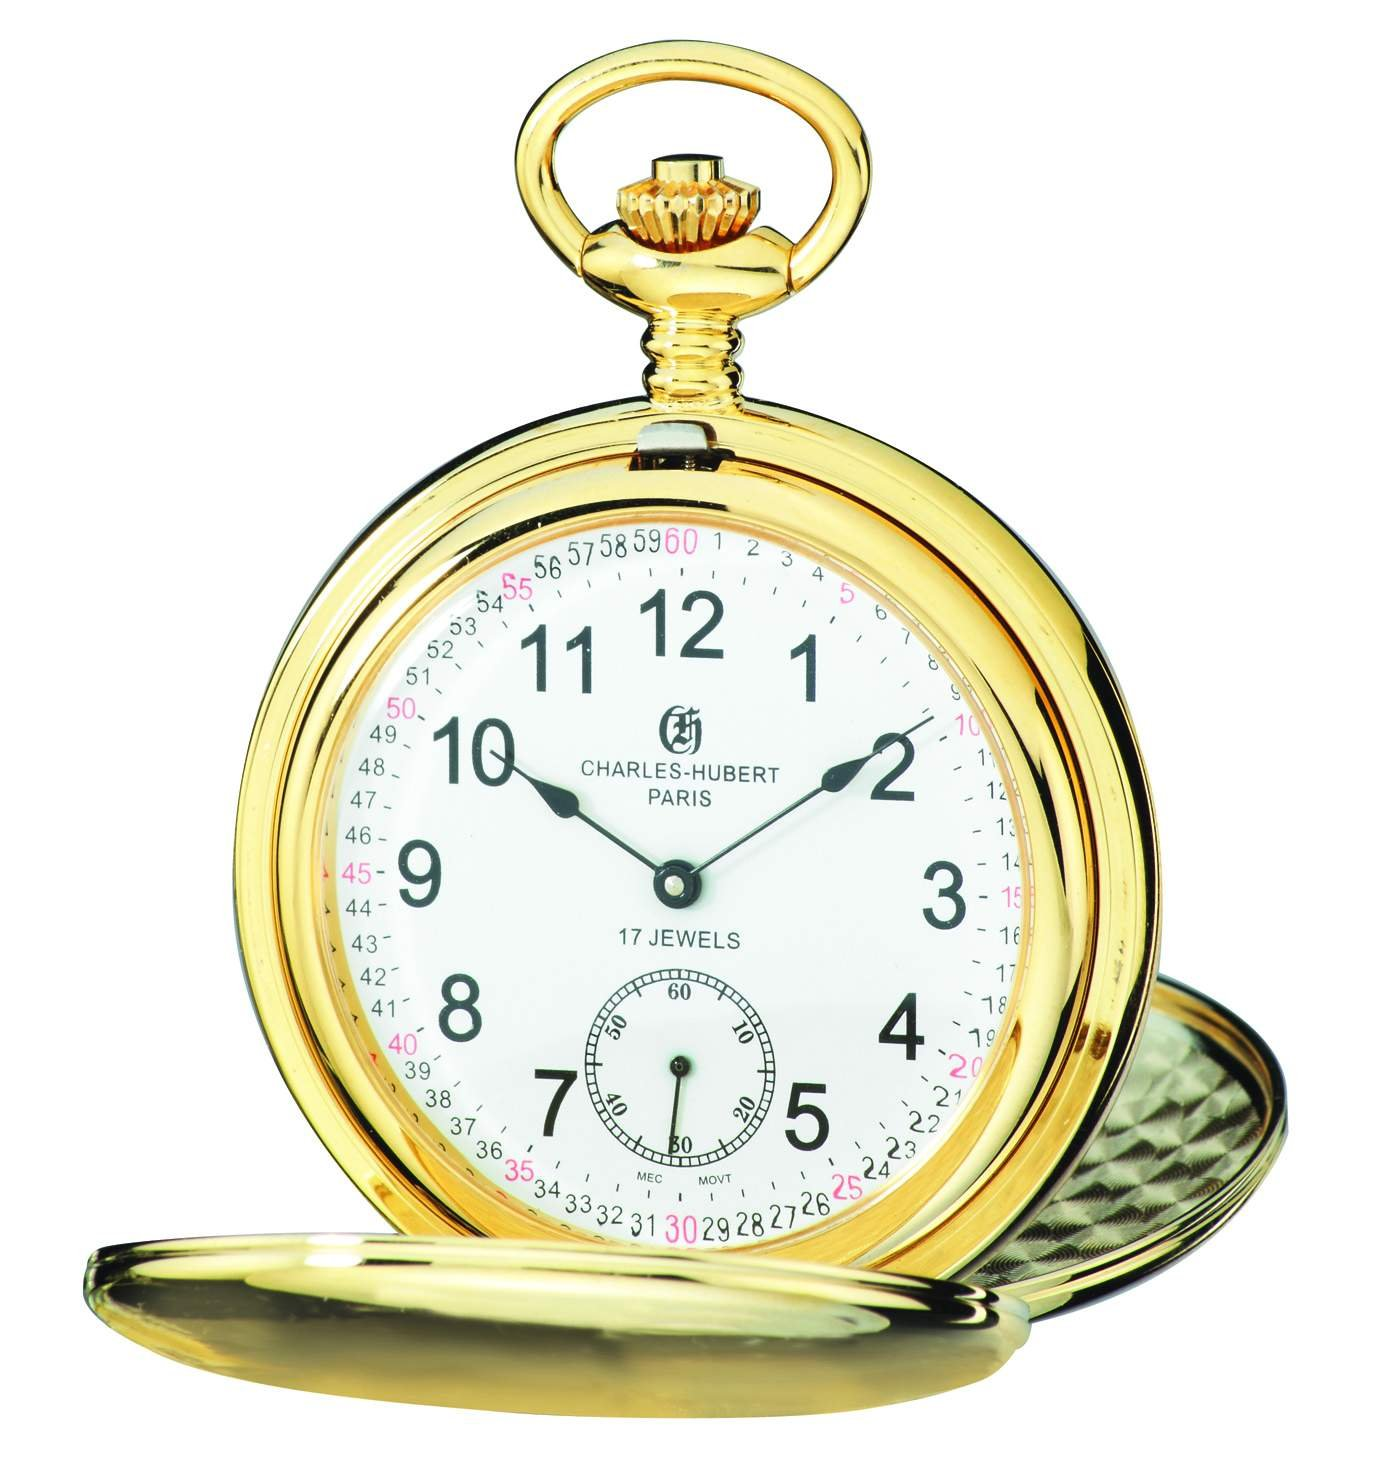 Charles-Hubert, Paris 3907-GRR Premium Collection Gold-Plated Stainless Steel Polished Finish Double Hunter Case Mechanical Pocket Watch by Charles-Hubert, Paris